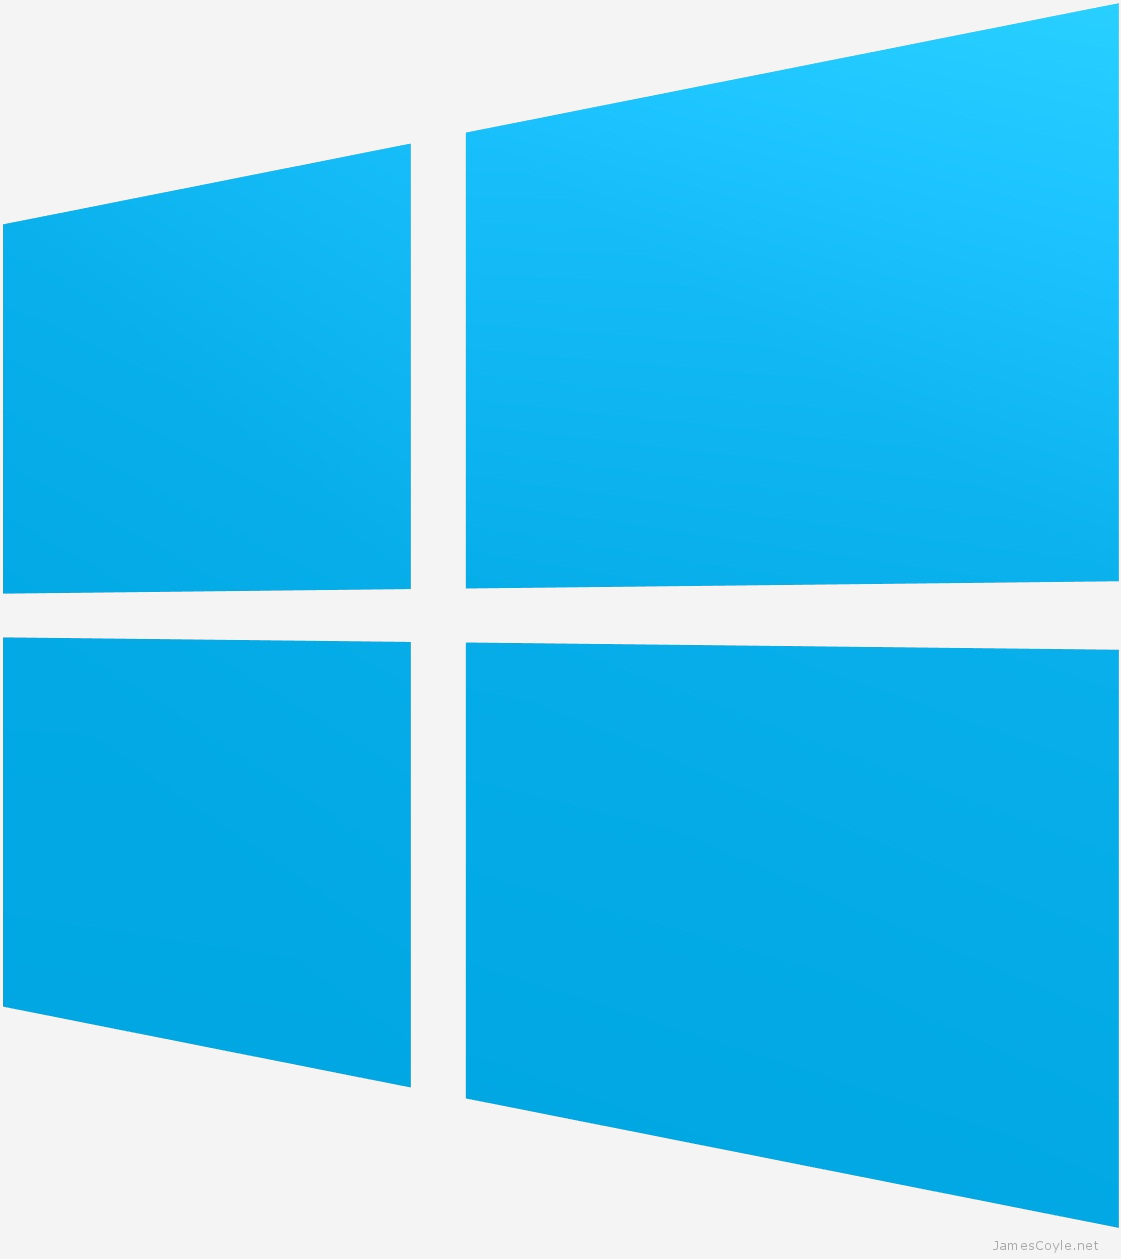 Windows logo 7